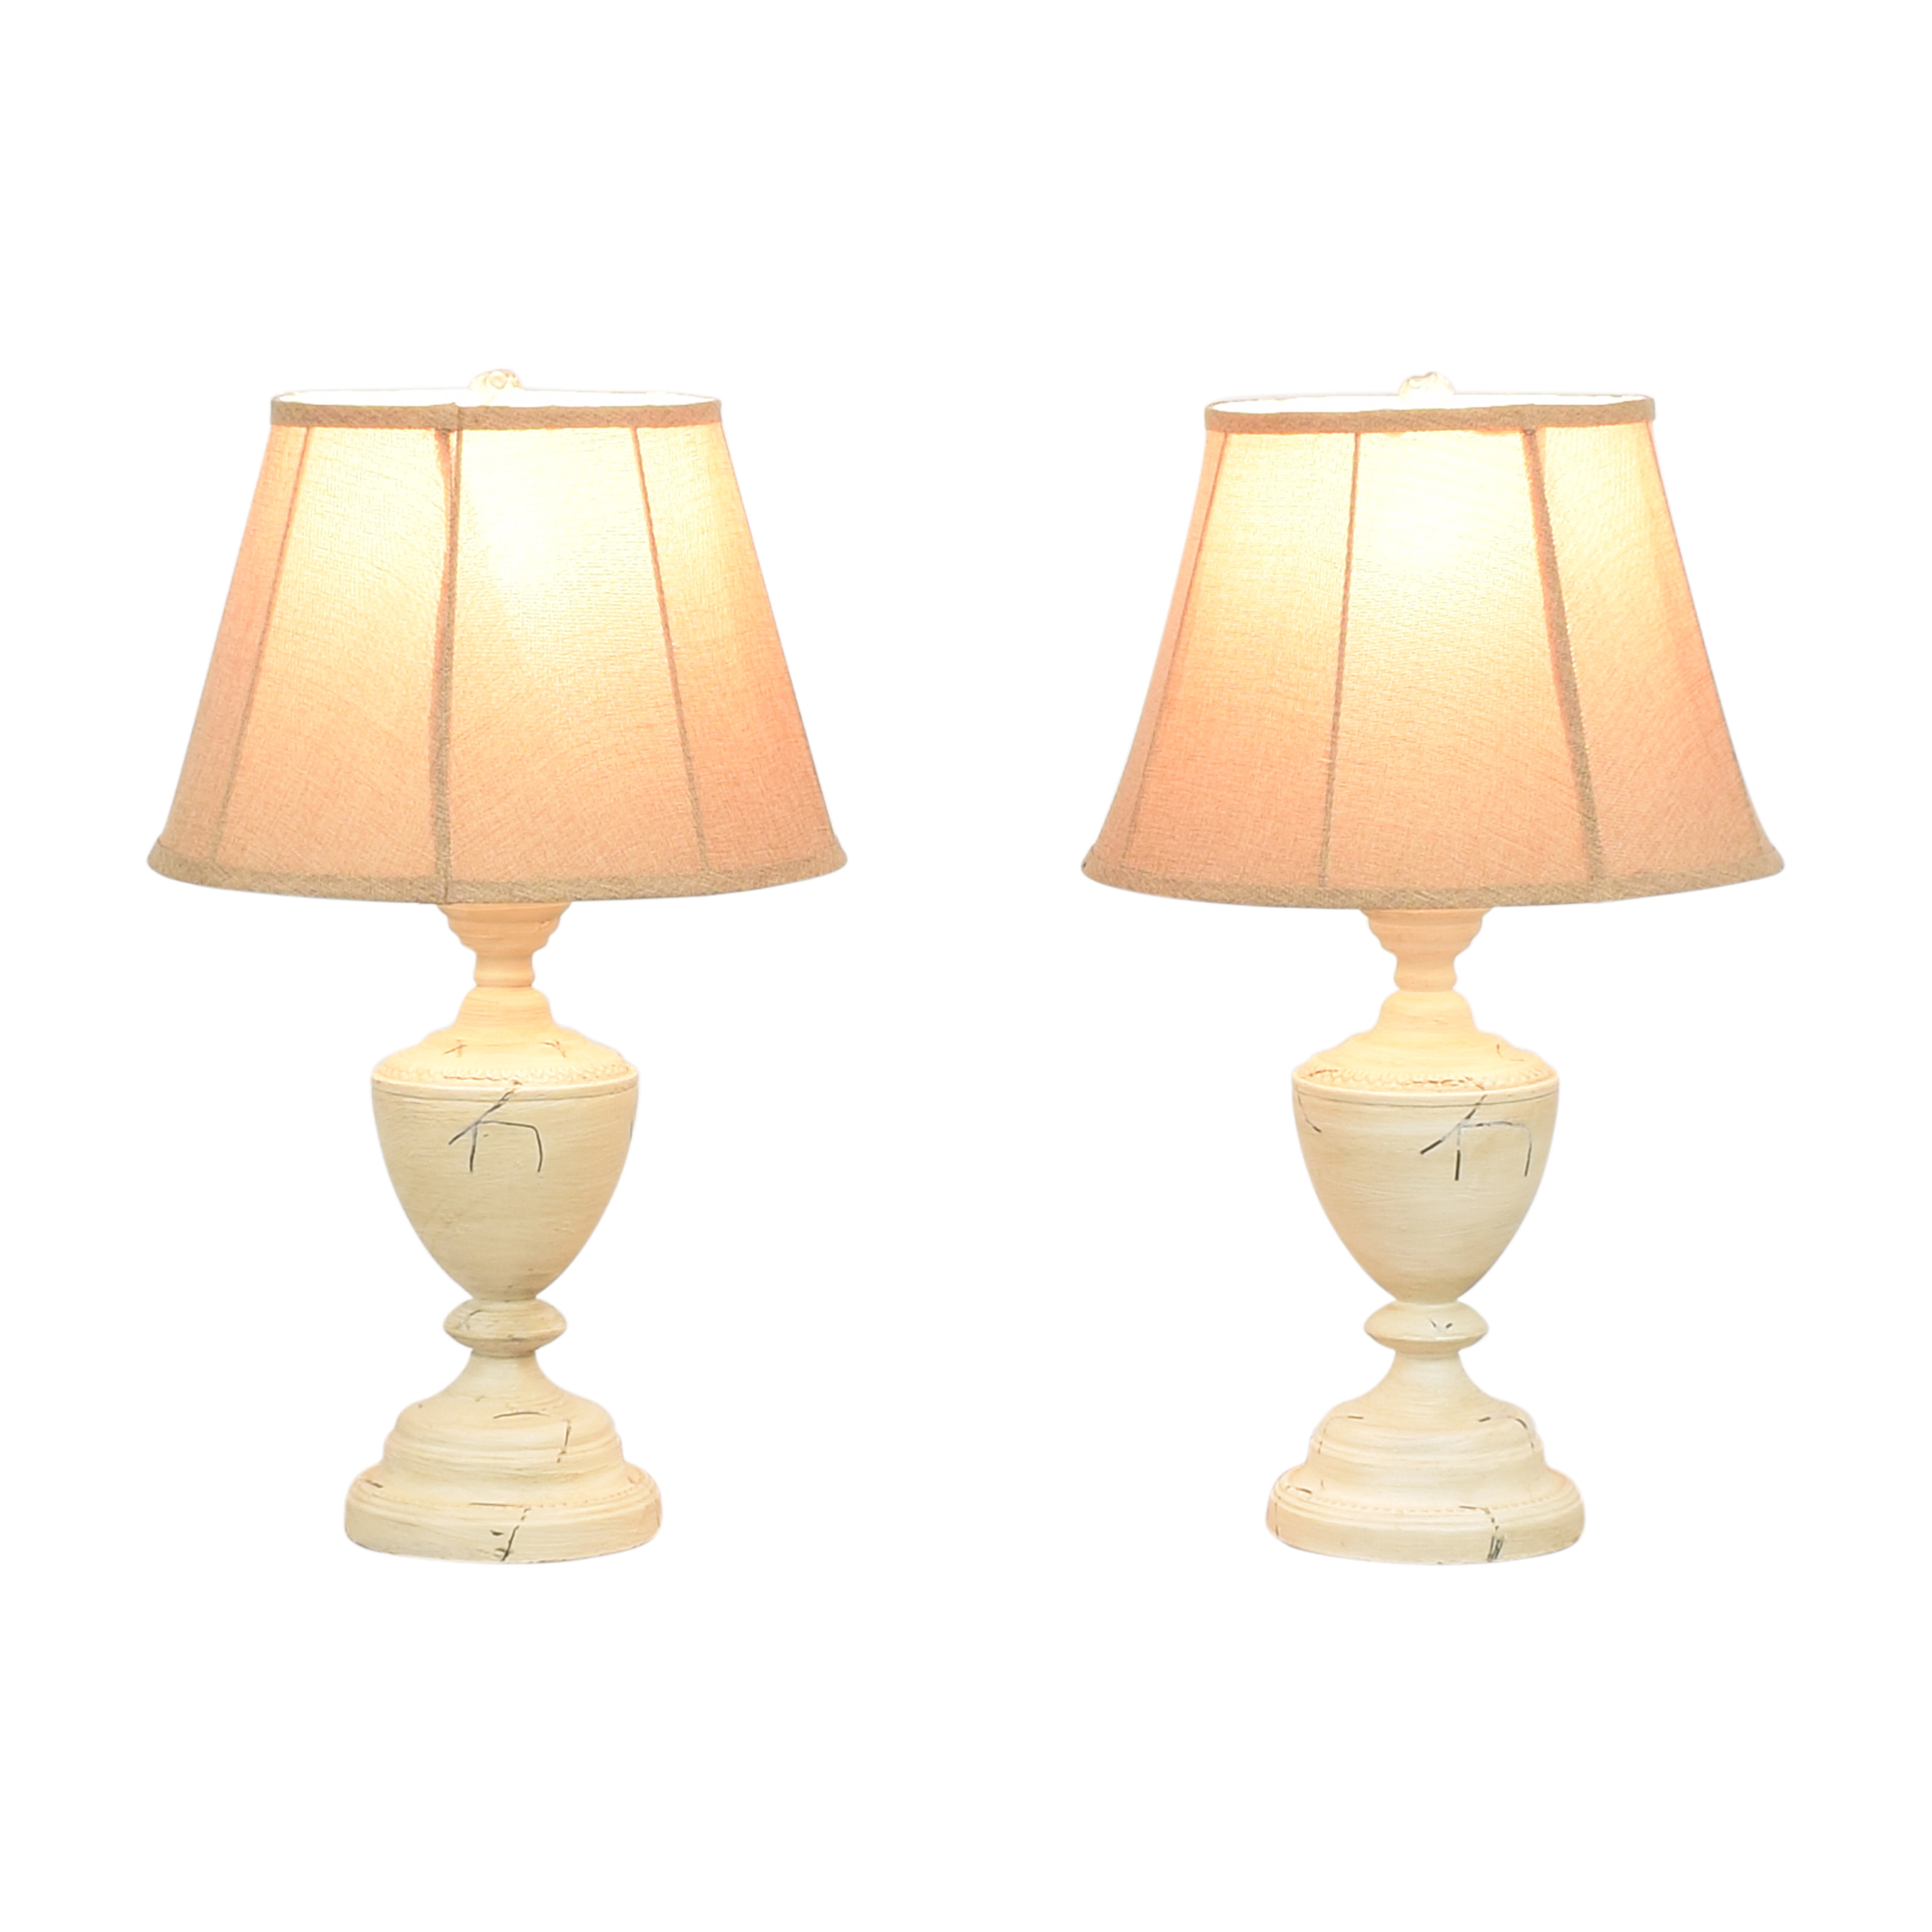 Country Willow Country Willow Table Lamps ct